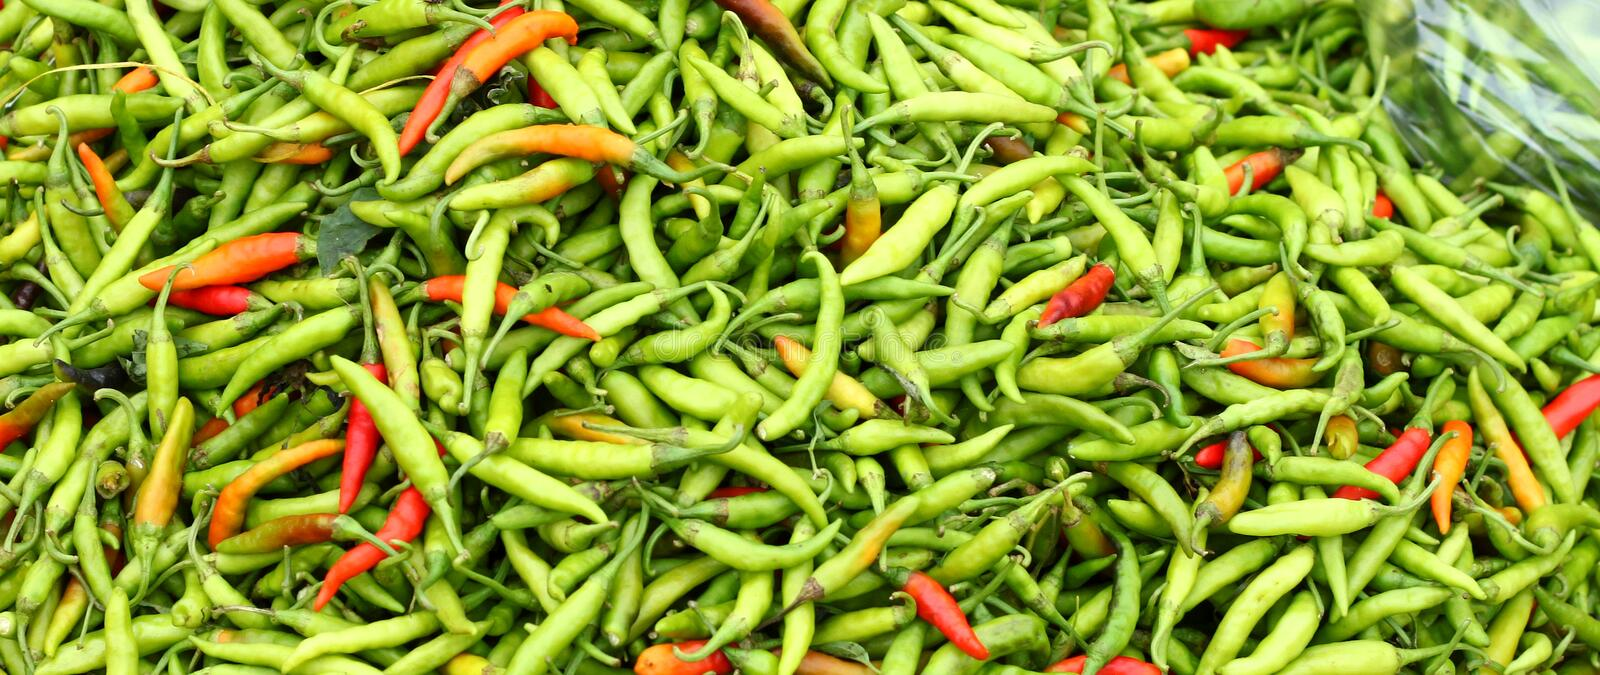 Download Colorful chillies stock photo. Image of food, indian - 19931364